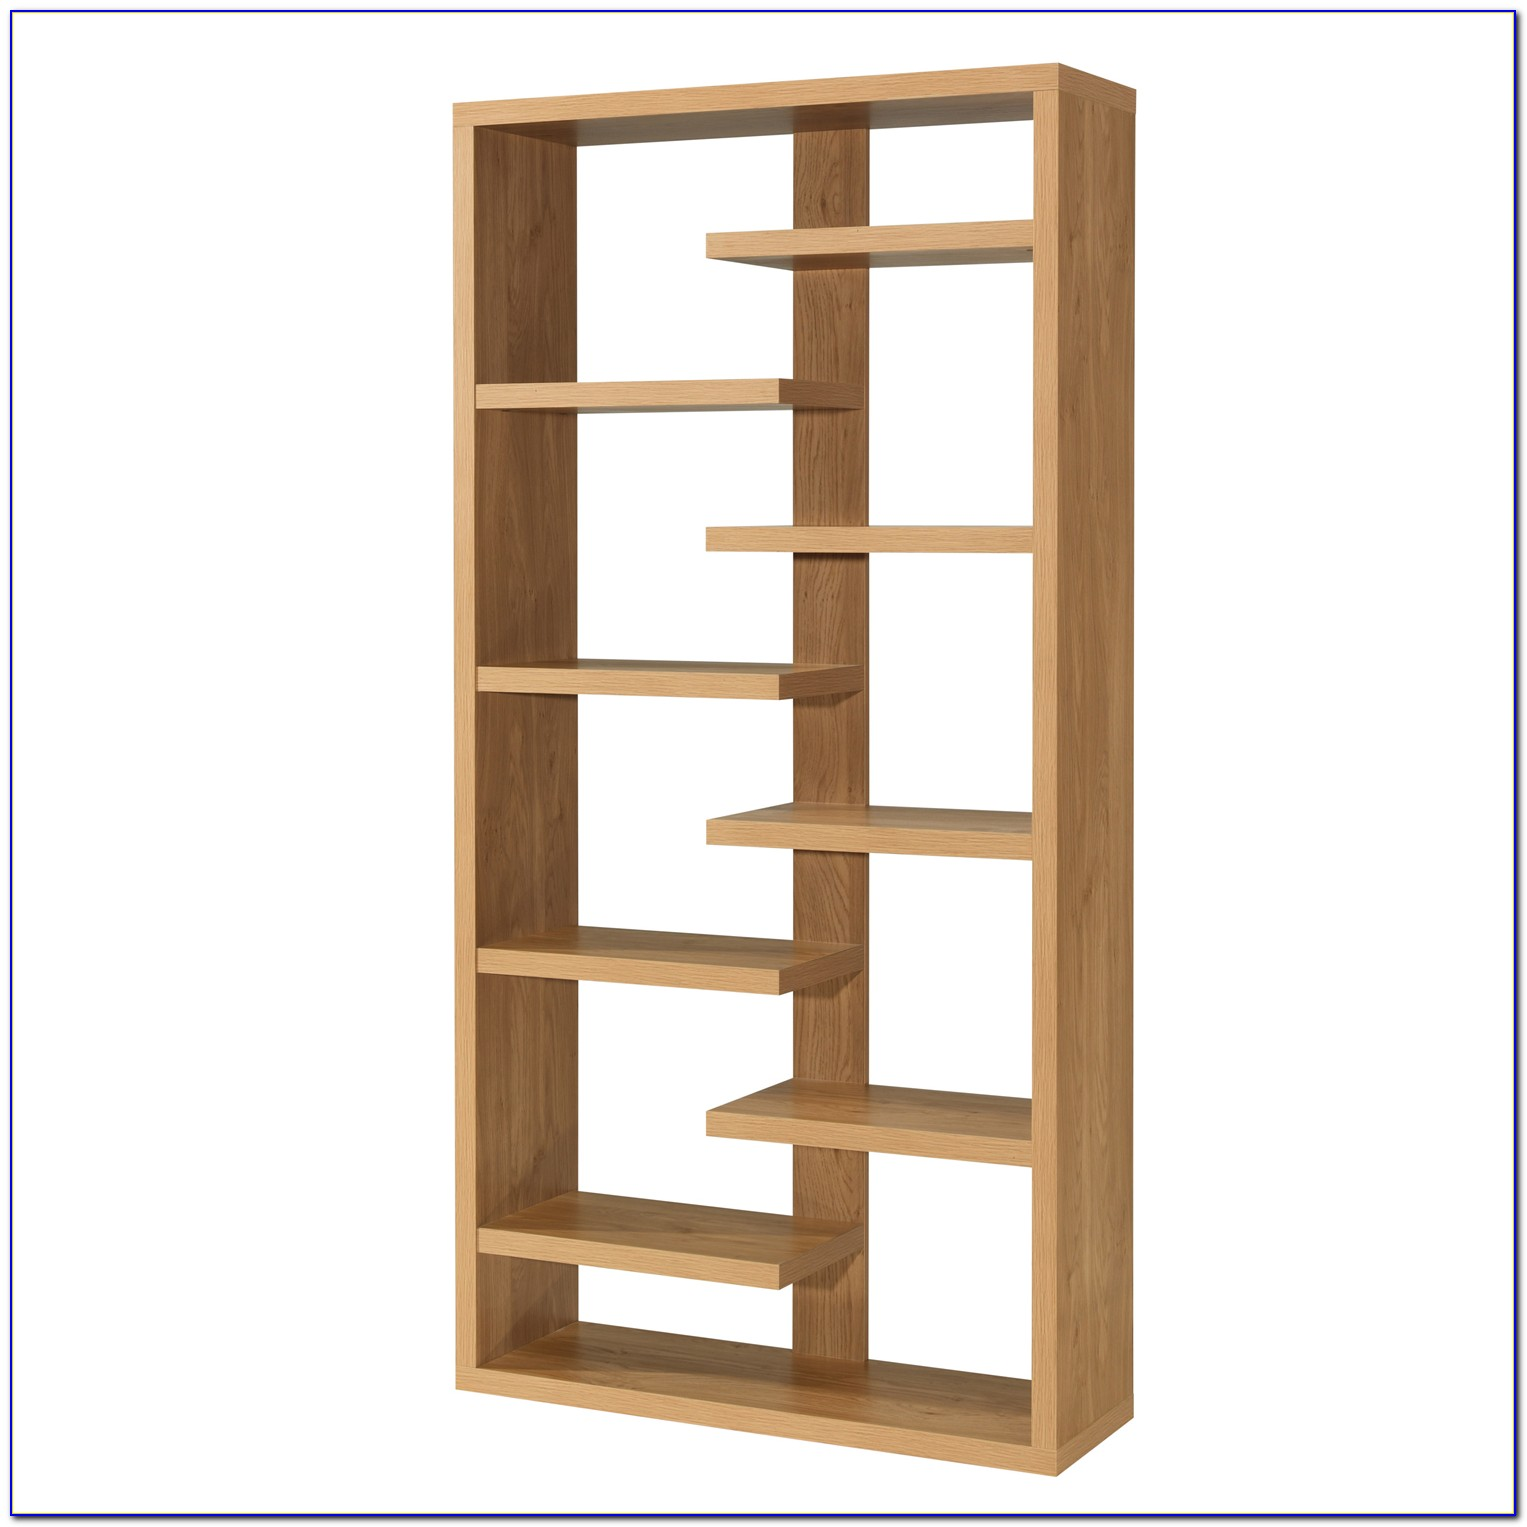 Bookcases & Shelving Units Uk